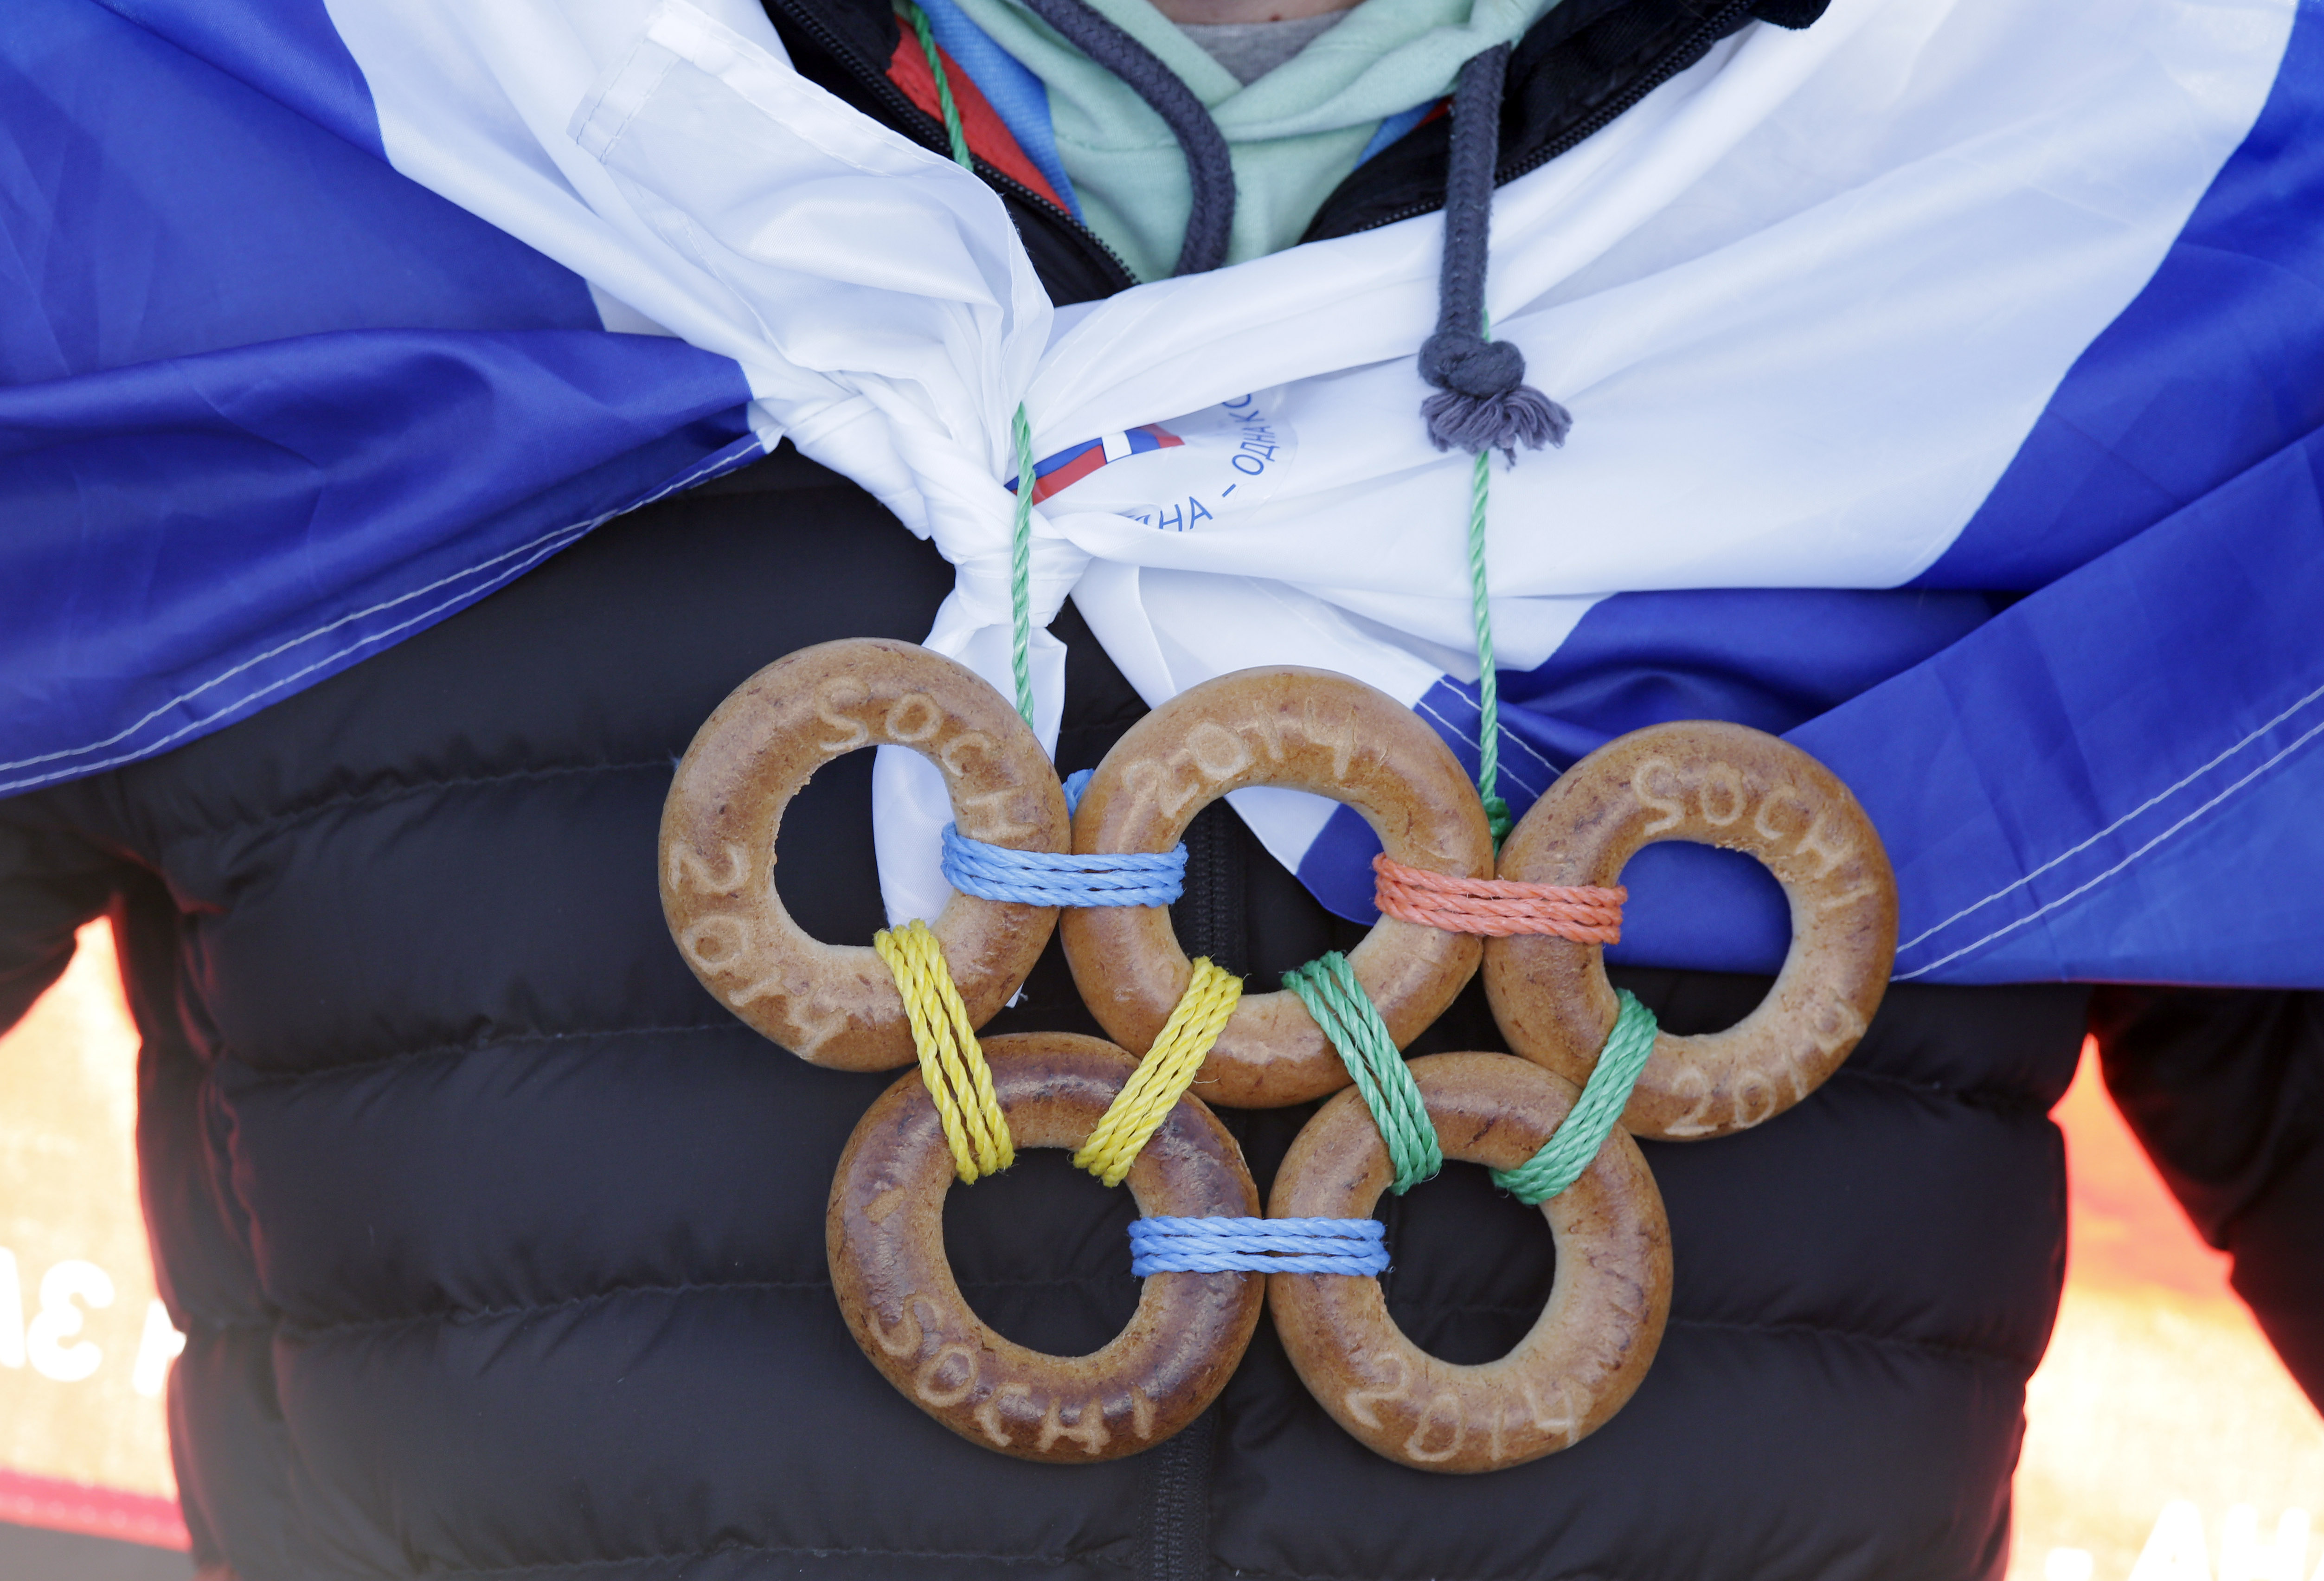 A spectator wears the Olympic rings made from bagels during the men's ski slopestyle qualifying at the Rosa Khutor Extreme Park, at the 2014 Winter Olympics, Thursday, Feb. 13, 2014, in Krasnaya Polyana, Russia. (AP Photo/Andy Wong)